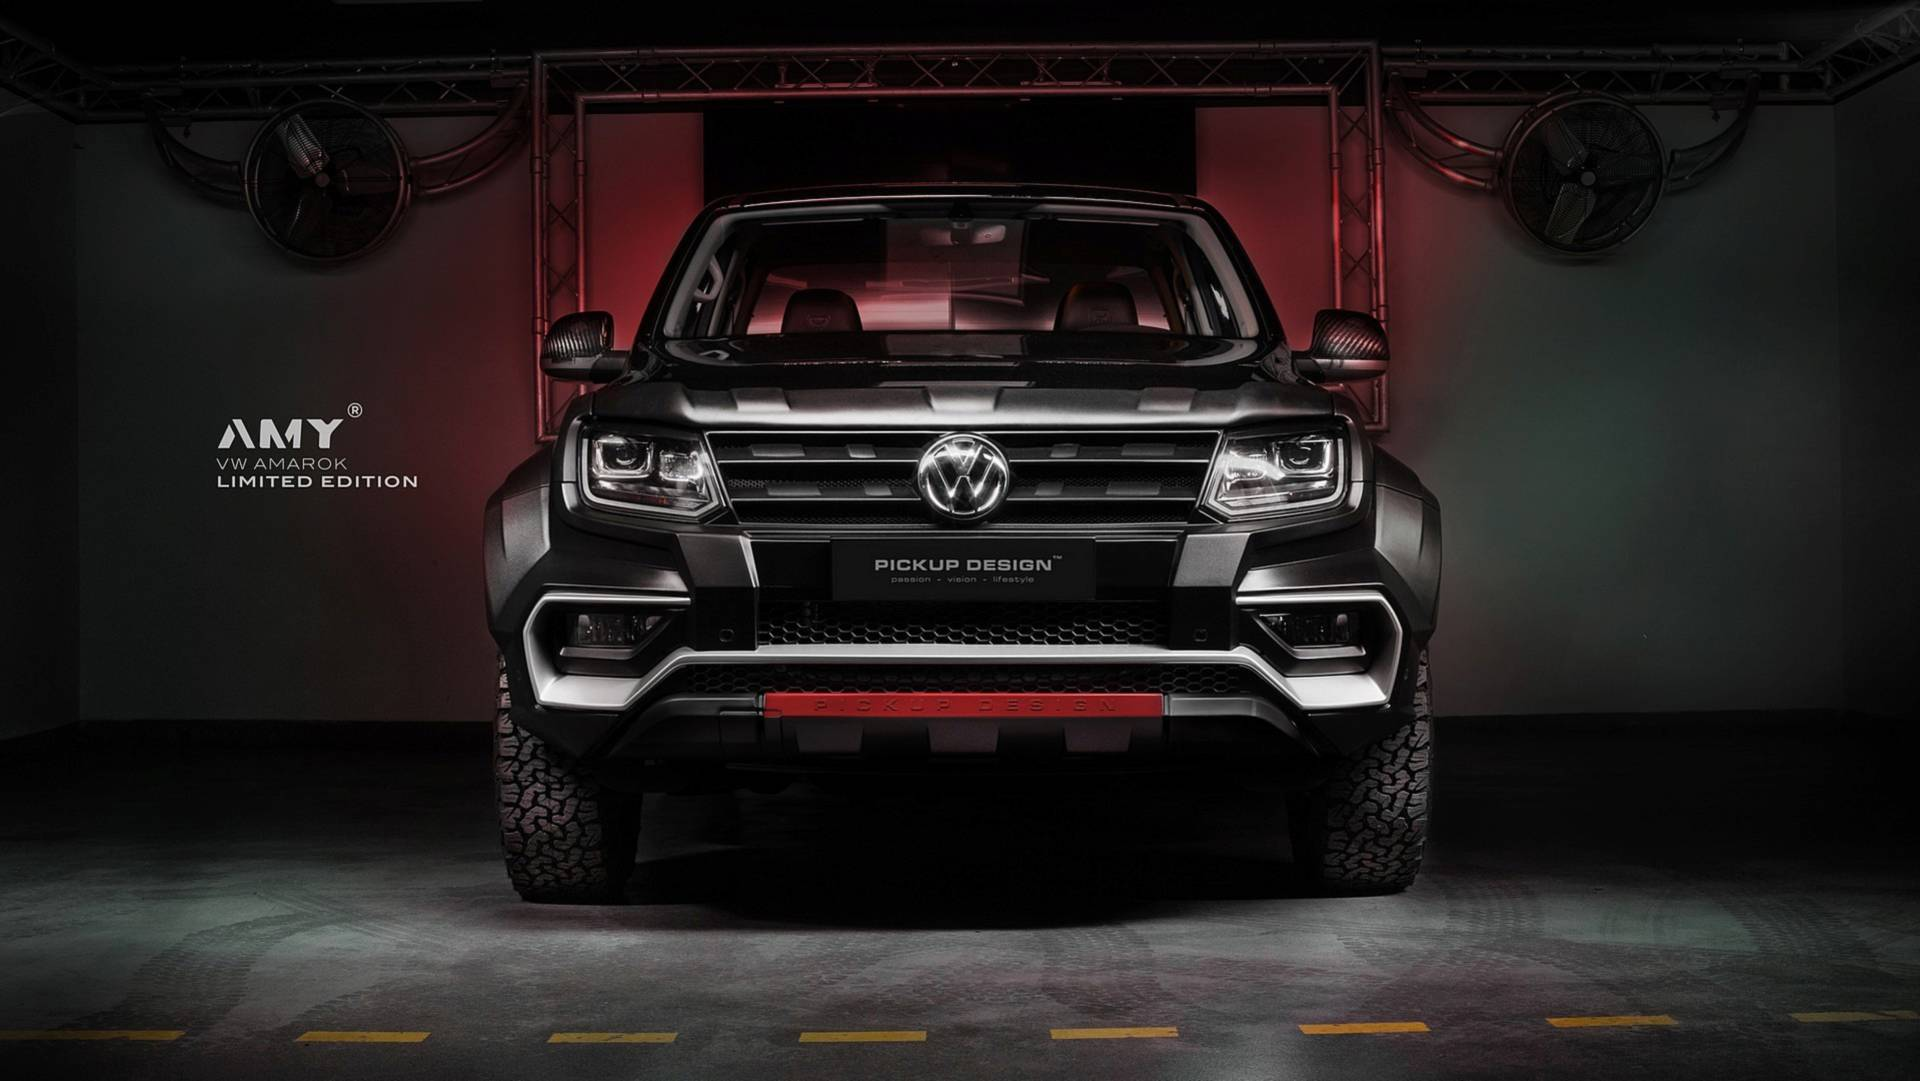 Volkswagen Amarok Amy by Carlex Design (2)